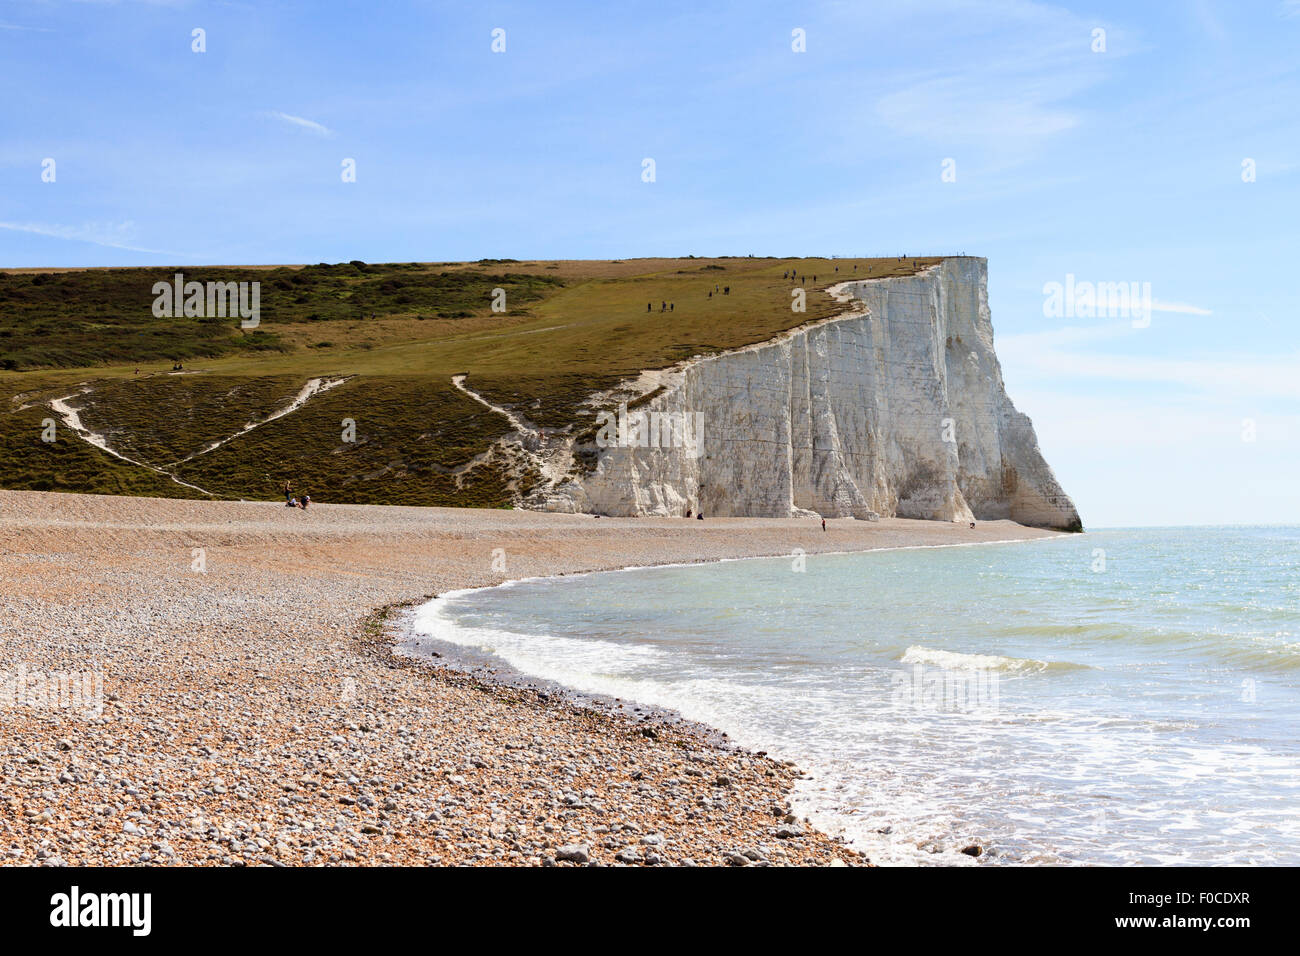 View of the Seven Siters as seen from the beach at Cuckmere Haven, East Sussex, england, UK Stock Photo